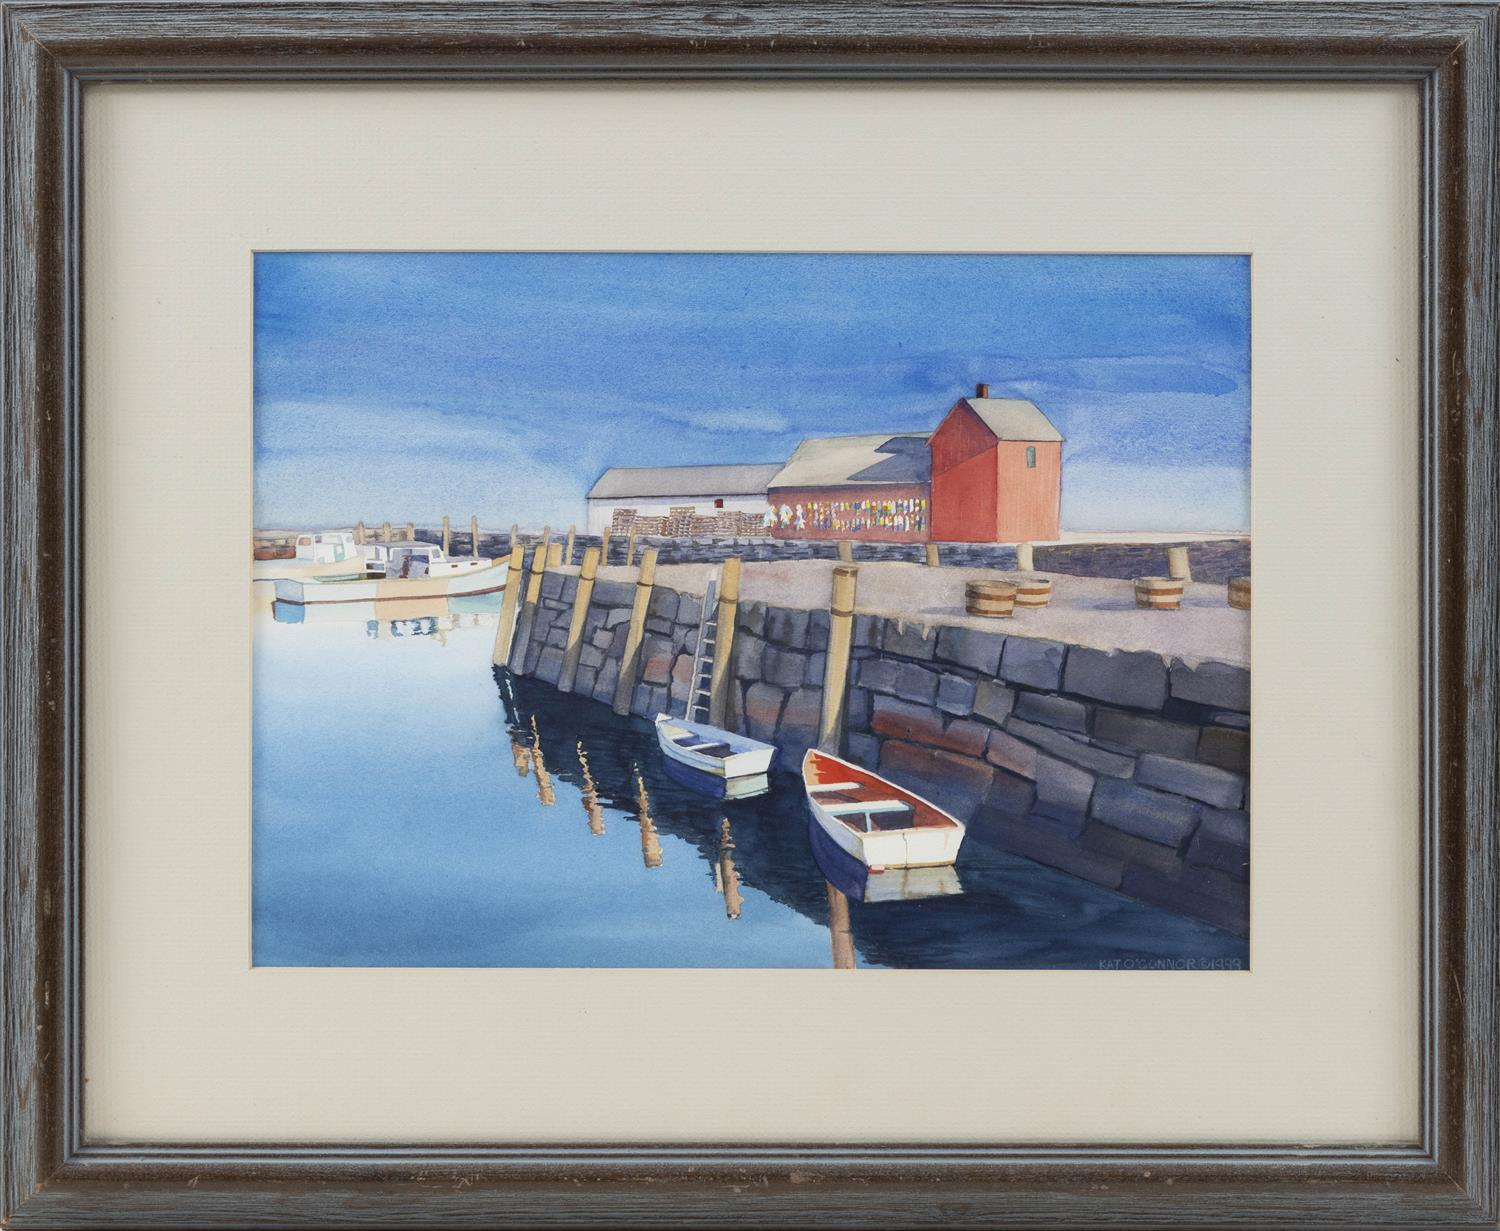 "KAT O'CONNOR, America, Contemporary, Motif #1, Rockport, Massachusetts., Watercolor on paper, 10.25"" x 14"". Framed 17"" x 22""."